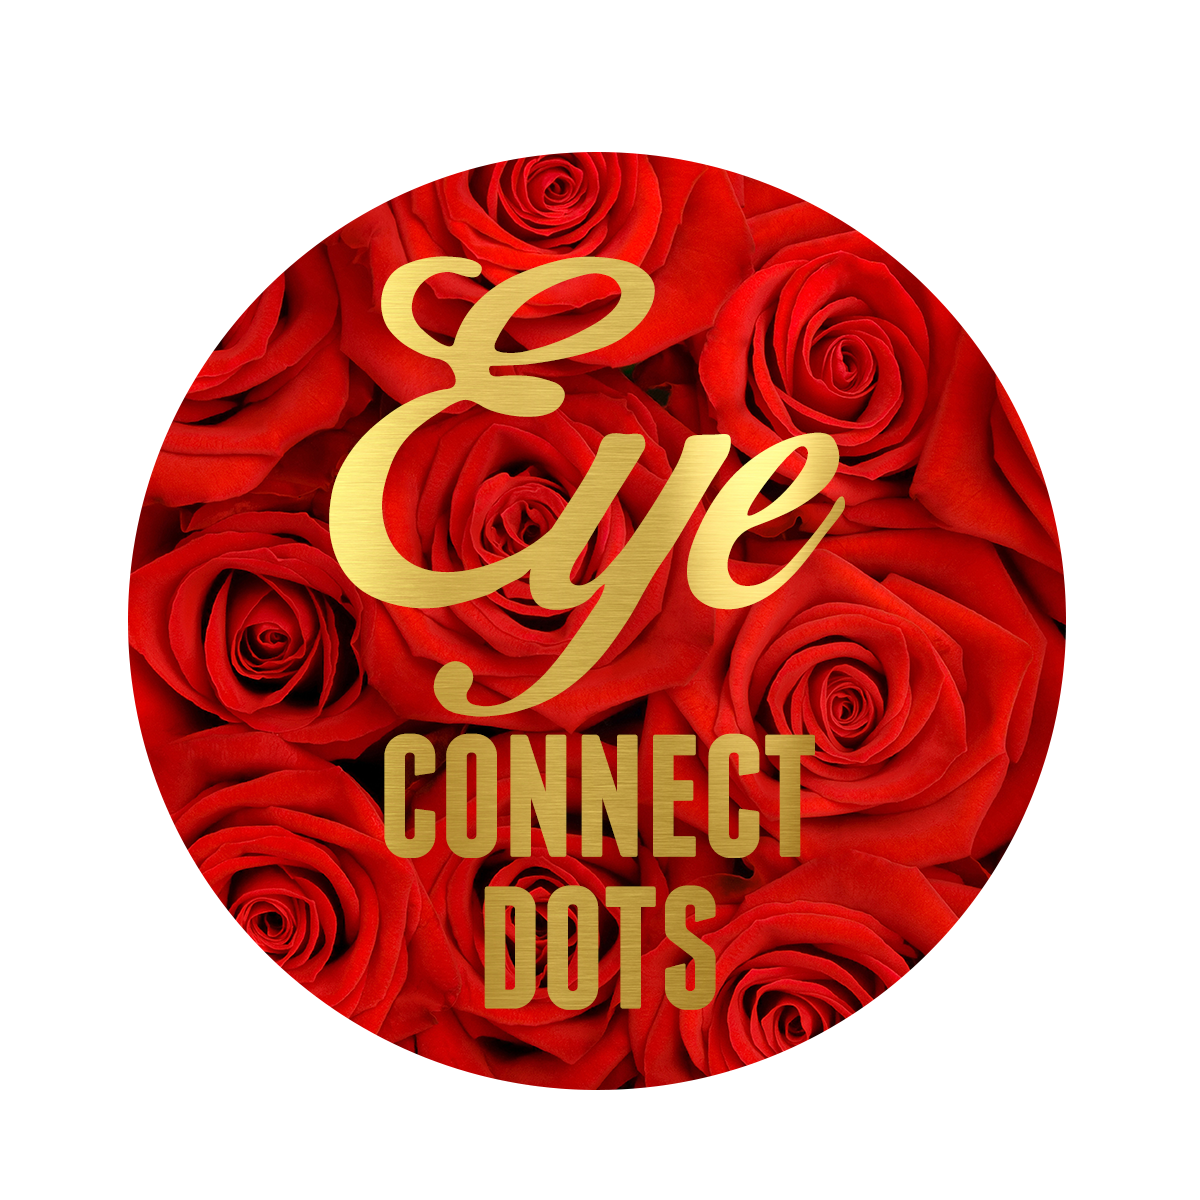 Eye Connect Dots